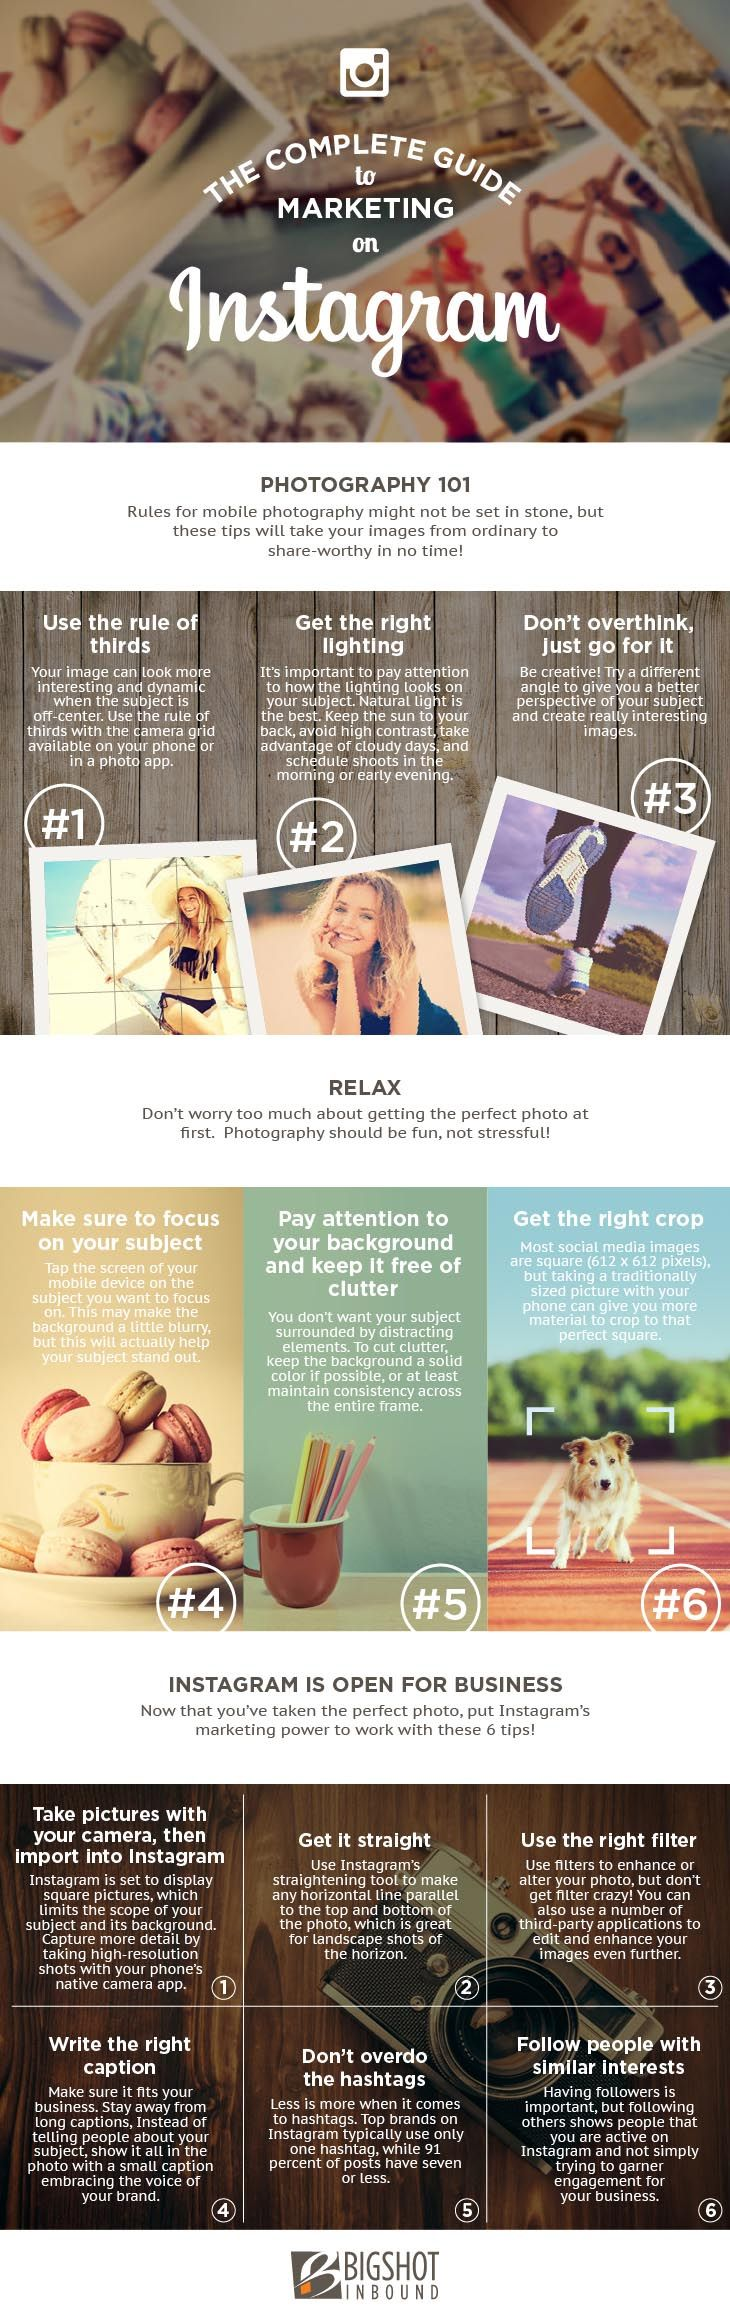 The Guide: How To Marketing Your Business On Instagram [infographic]